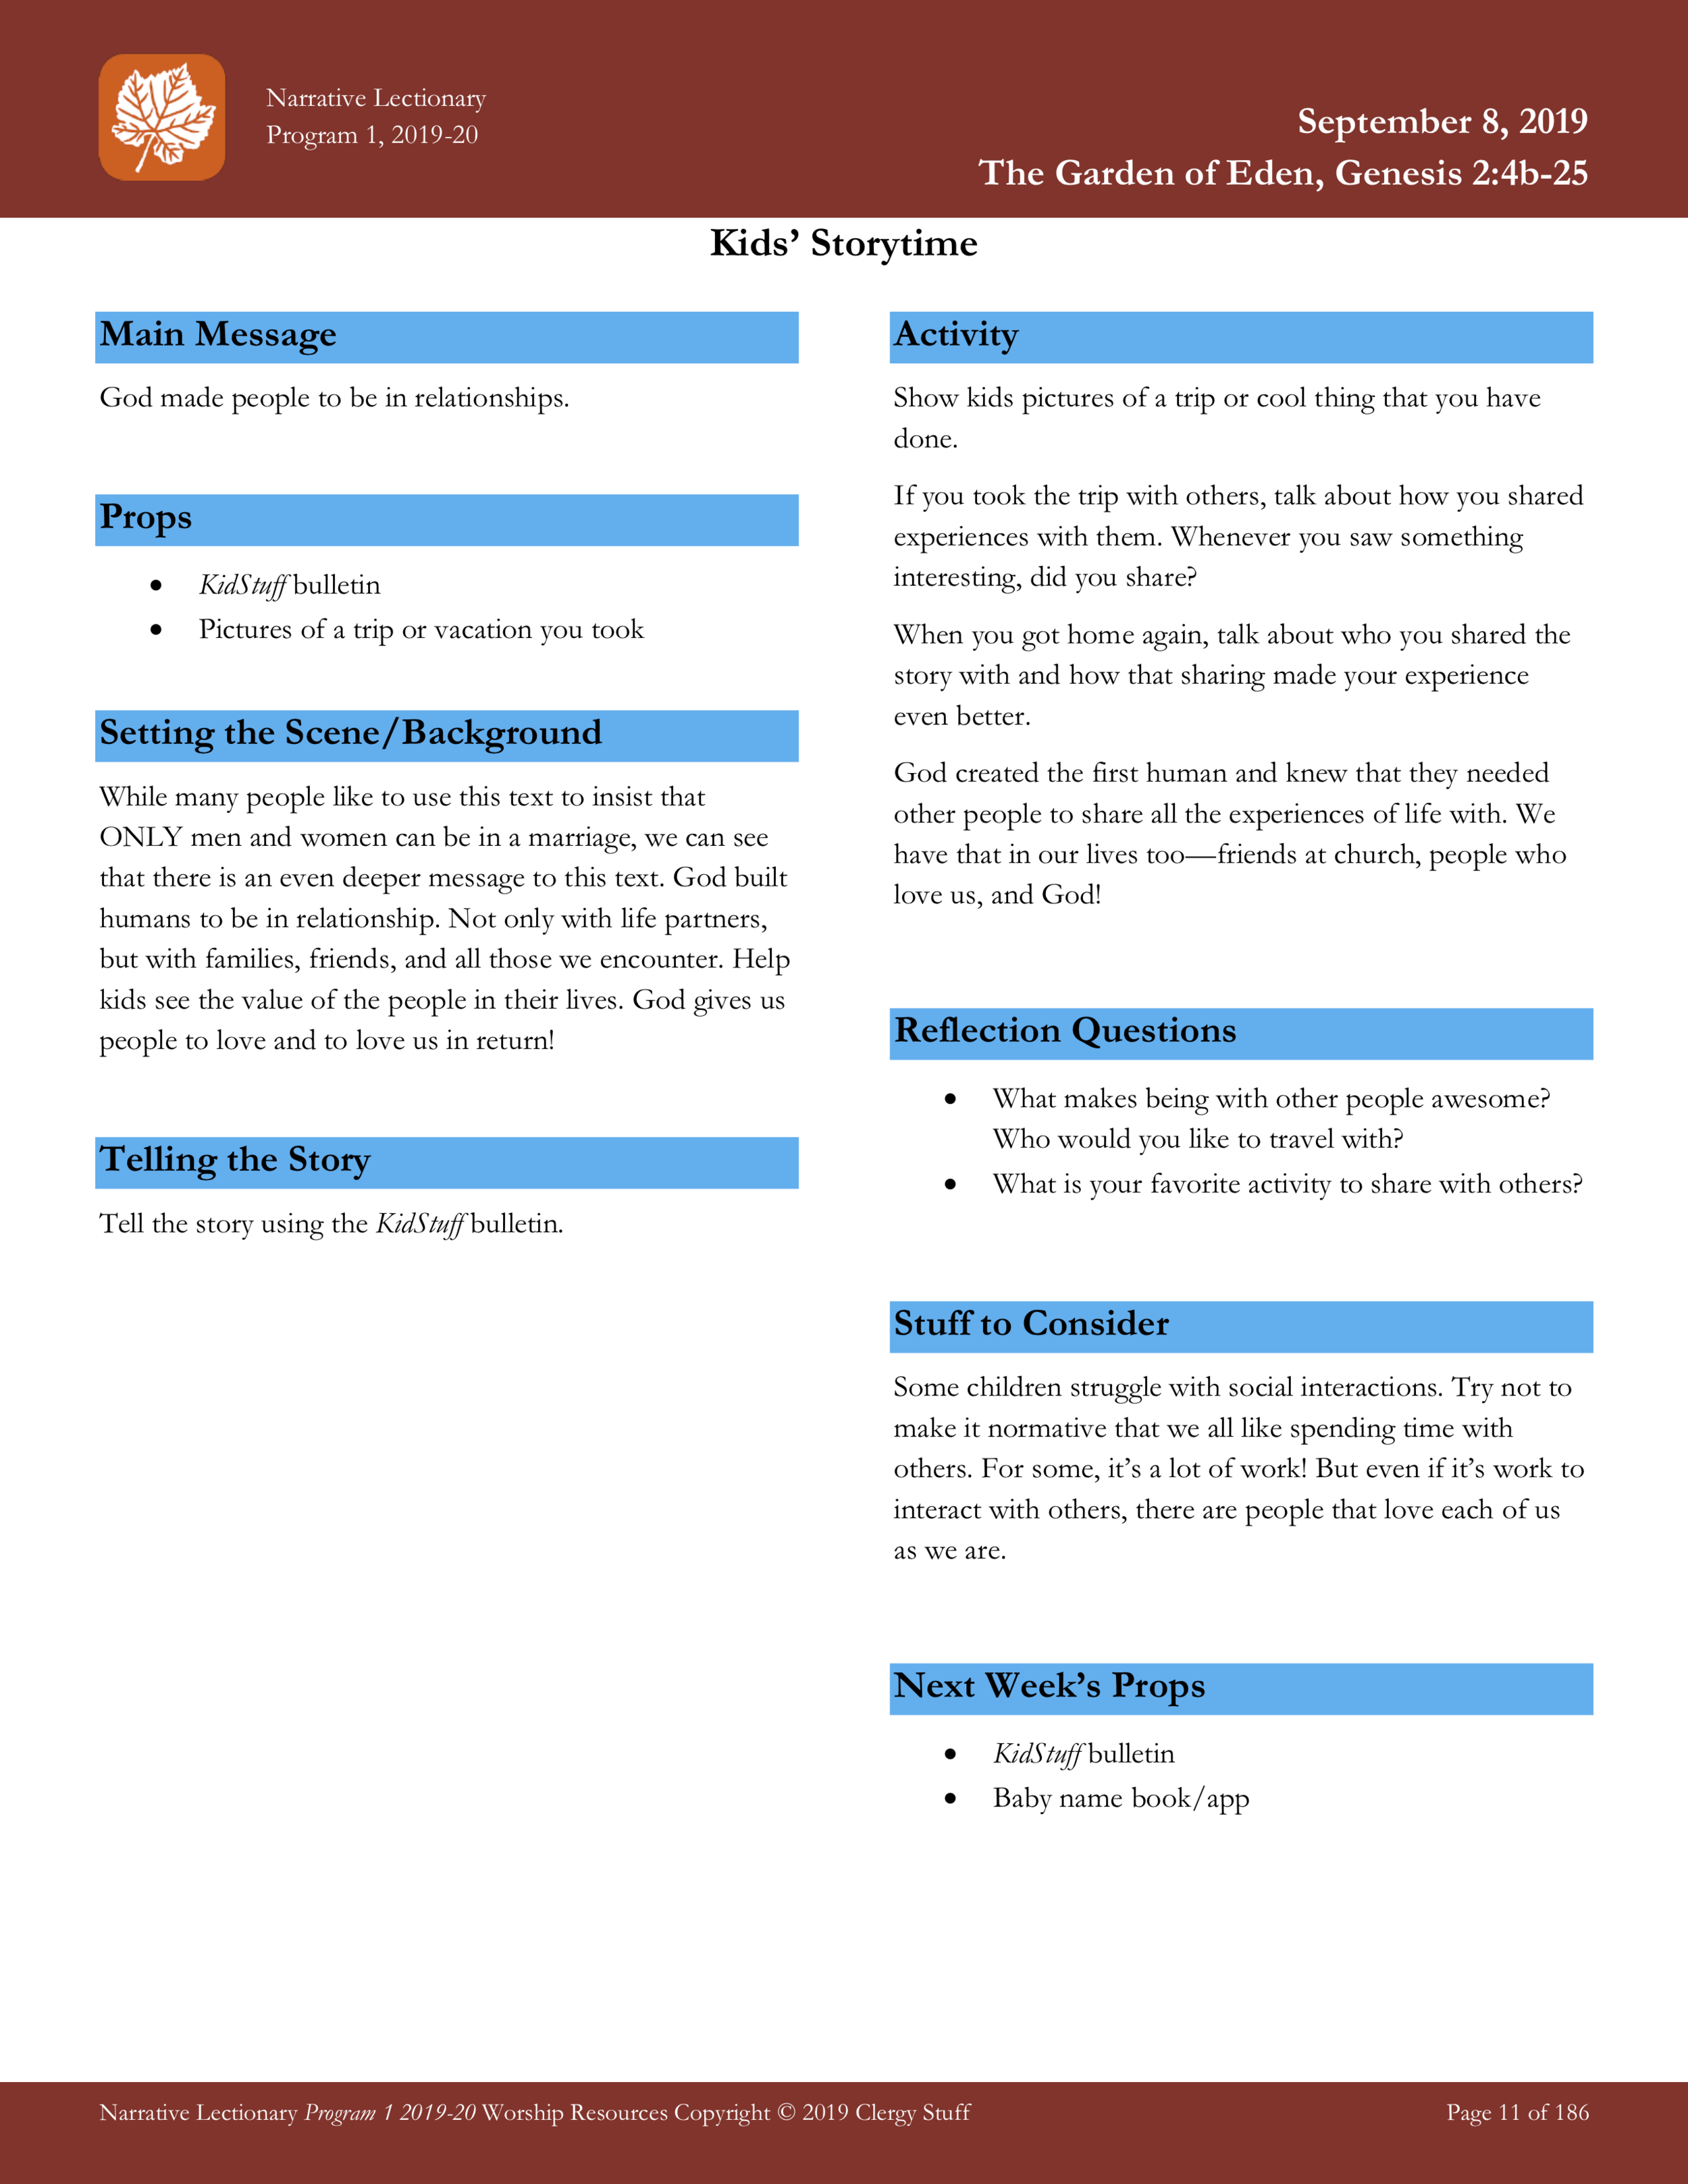 2019-20 program 1 worship resources NL copy (dragged) 10.png